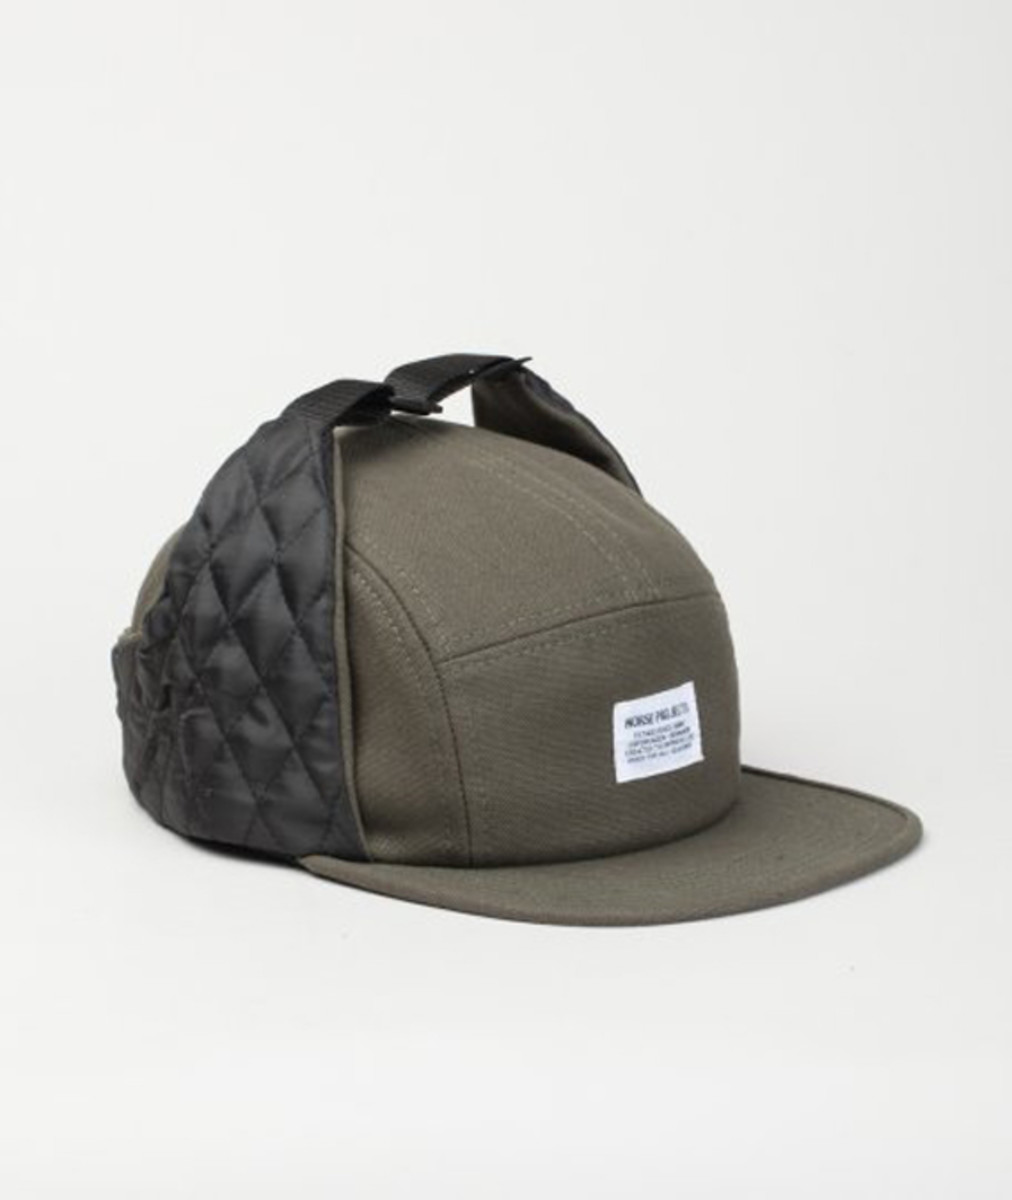 norse-projects-earflap-duck-canvas-cap-02